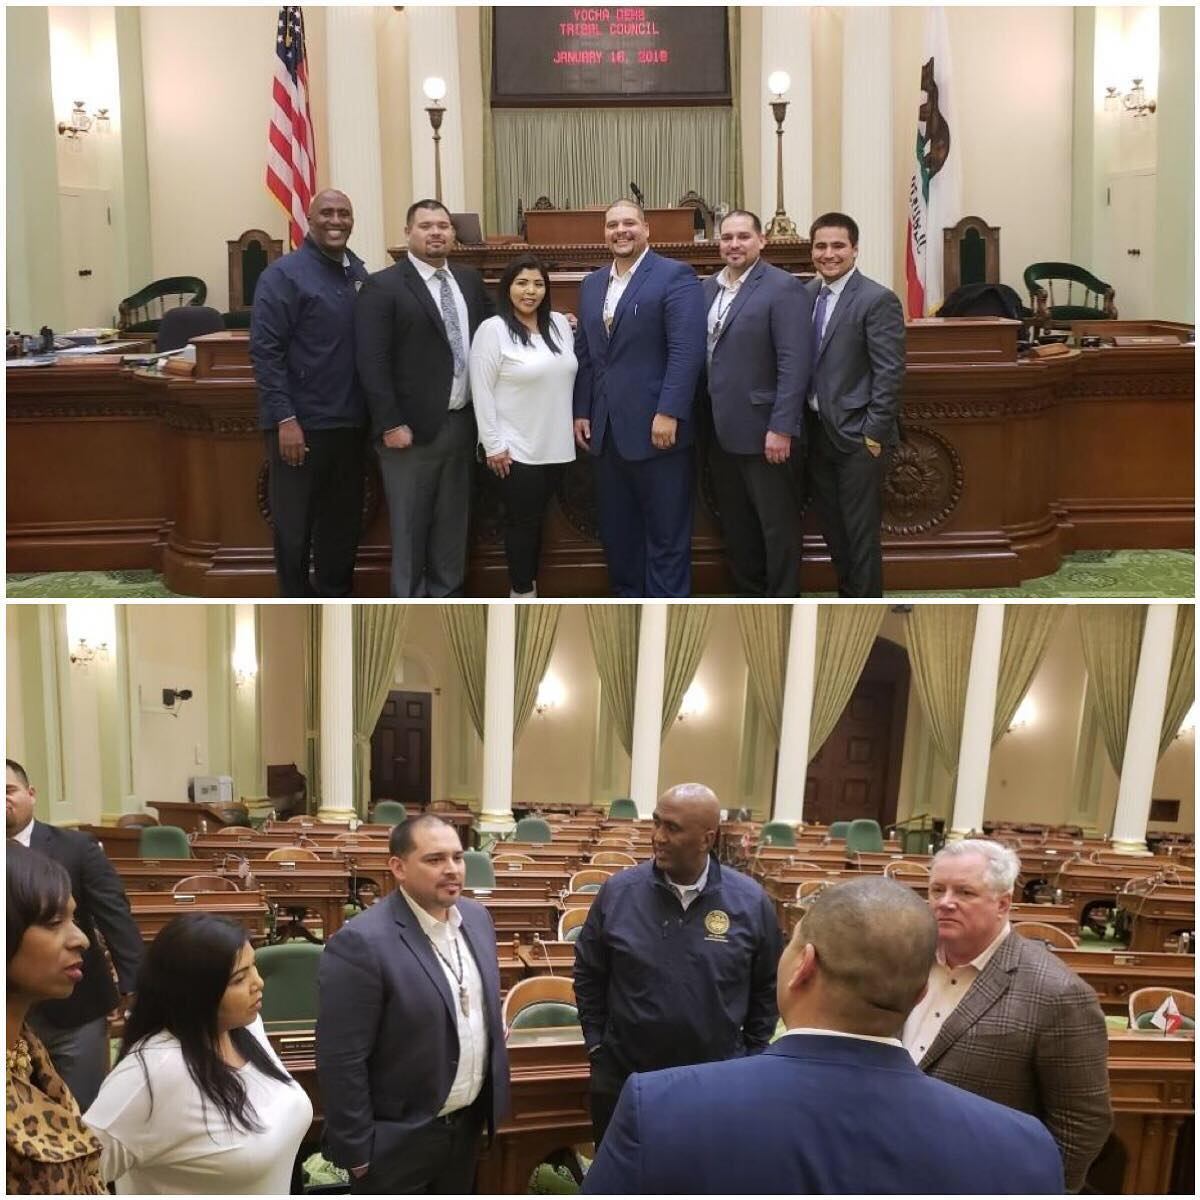 I had the pleasure of welcoming members of the Yocha Dehe Wintun Nation tribal council to the State Capitol.